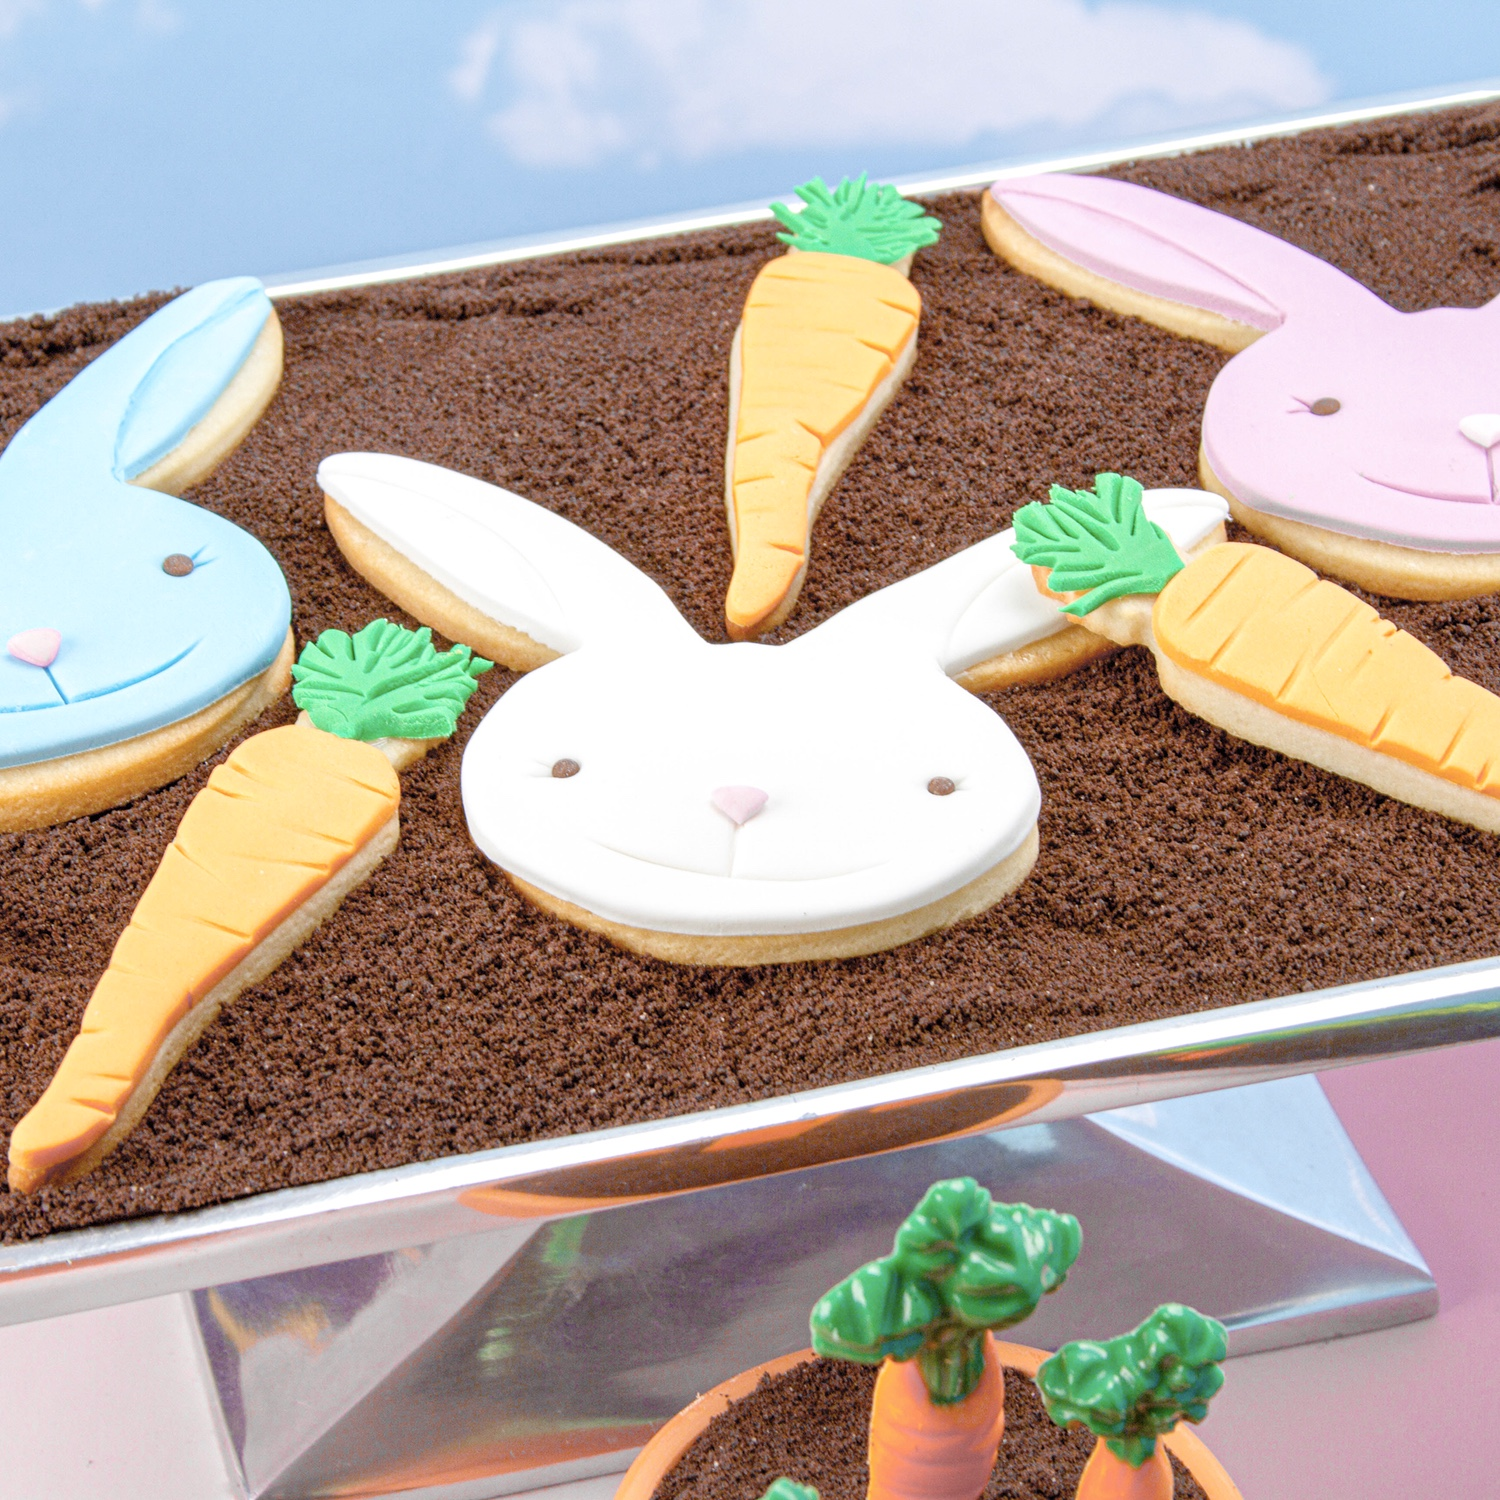 Bunny & Carrot Cookies